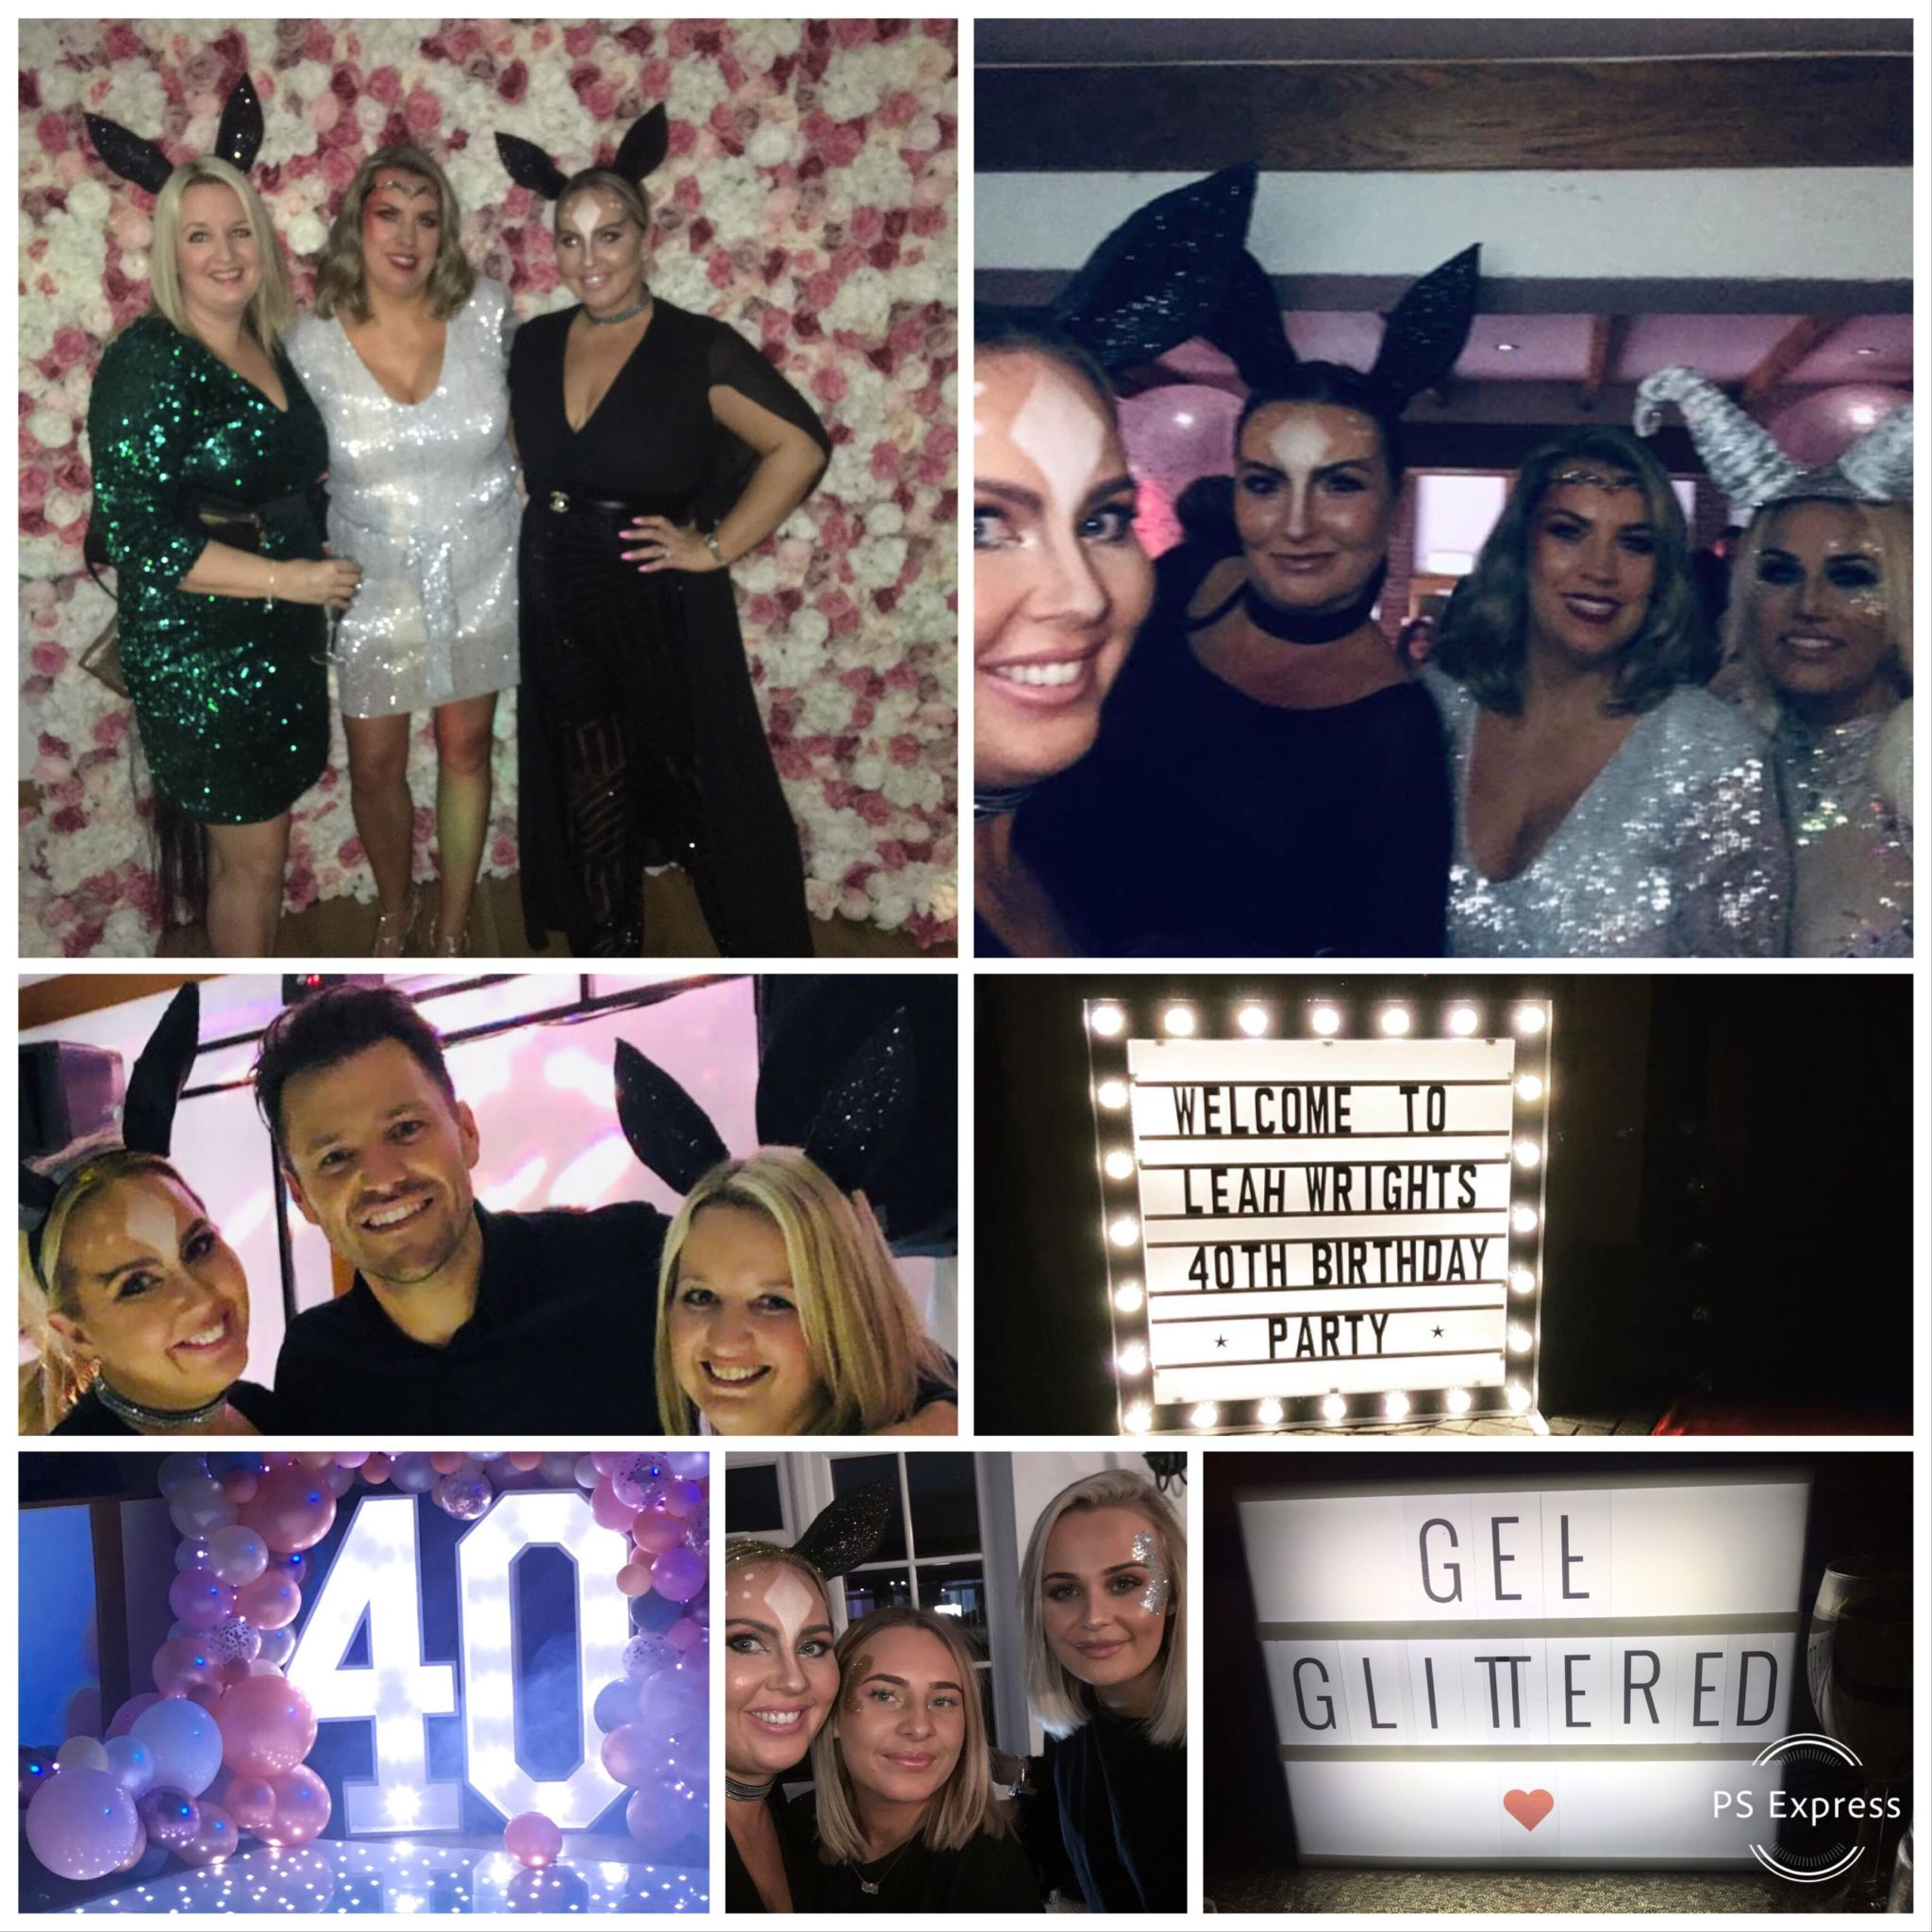 Leah Wrights 40th Birthday Party Chinese New Year Fancy Dress